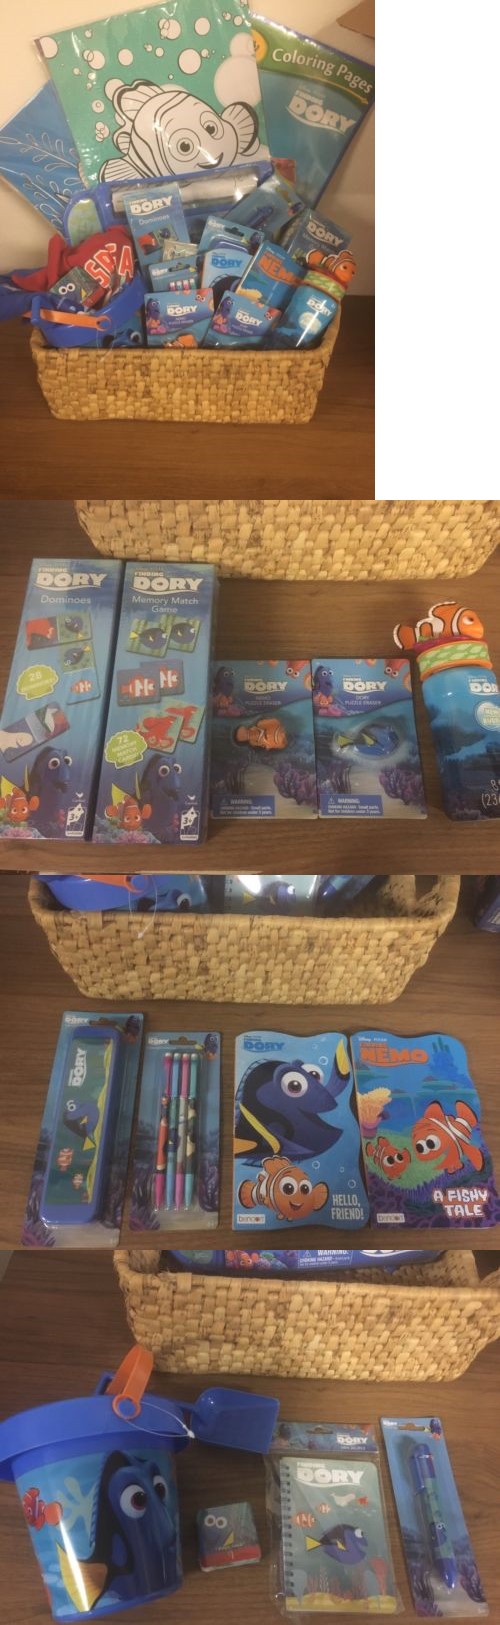 finding nemo 50310 finding dory nemo gift basket easter basket coloring pages domino match game